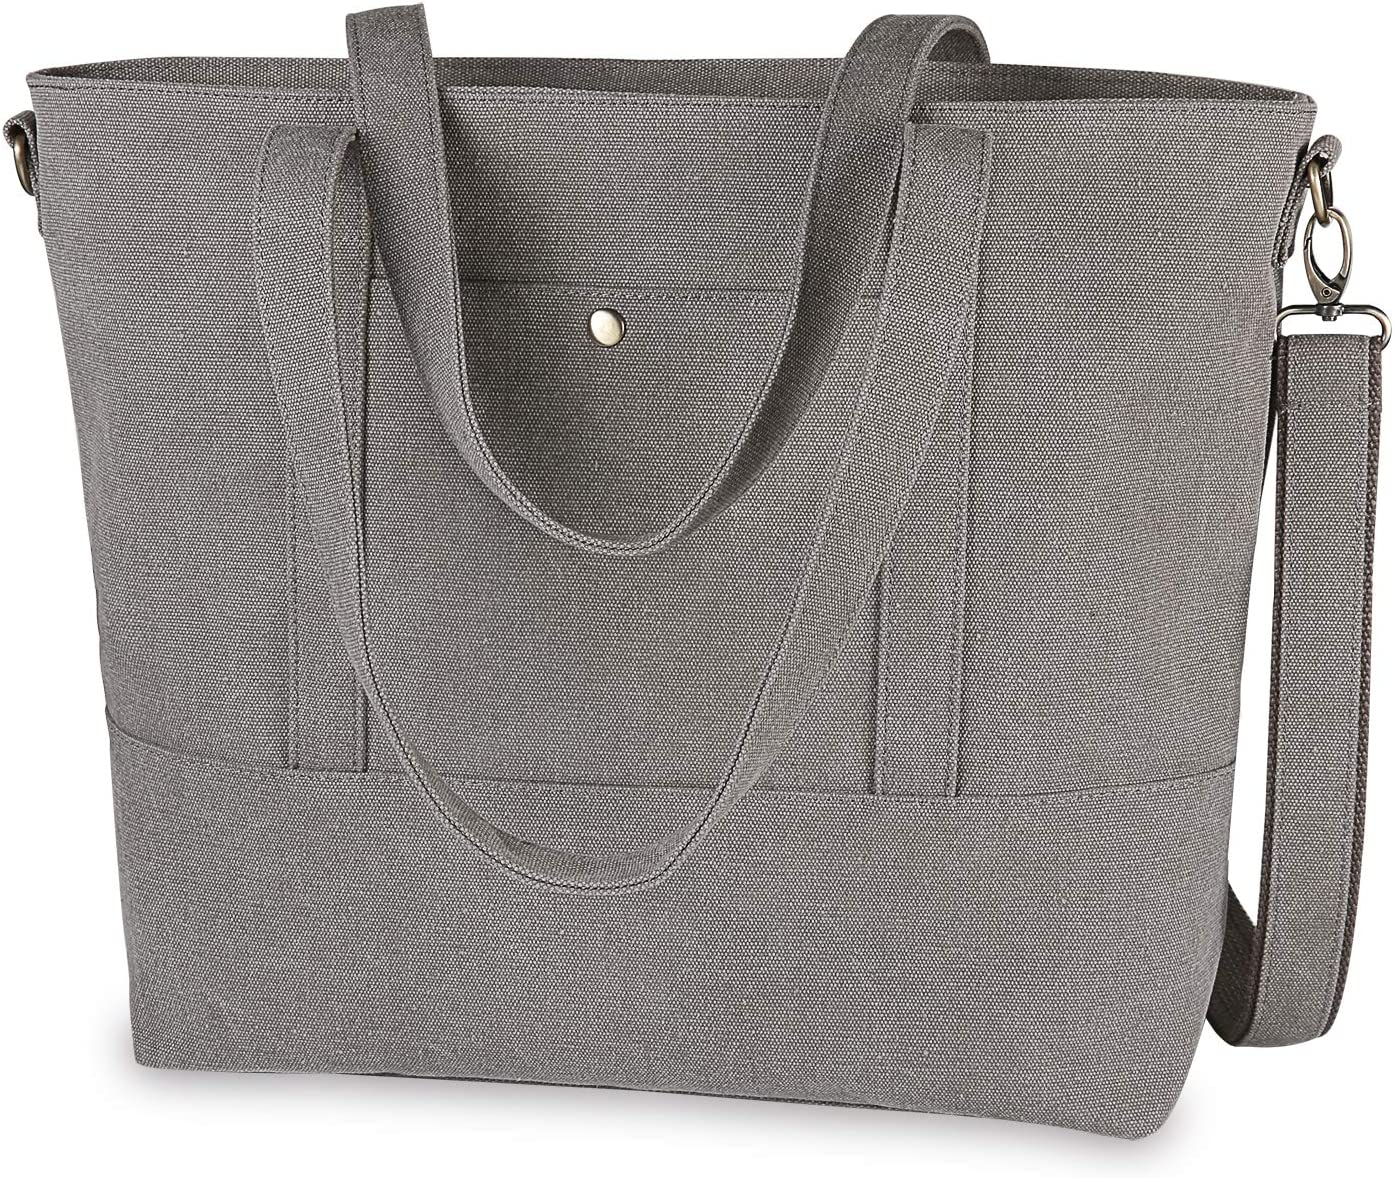 IDAILU Canvas Laptop Tote Bag for Women Fits 13 14 Inch Computer Large Capacity Work Travel Shoulder Handbag with Padding (Purple gray)